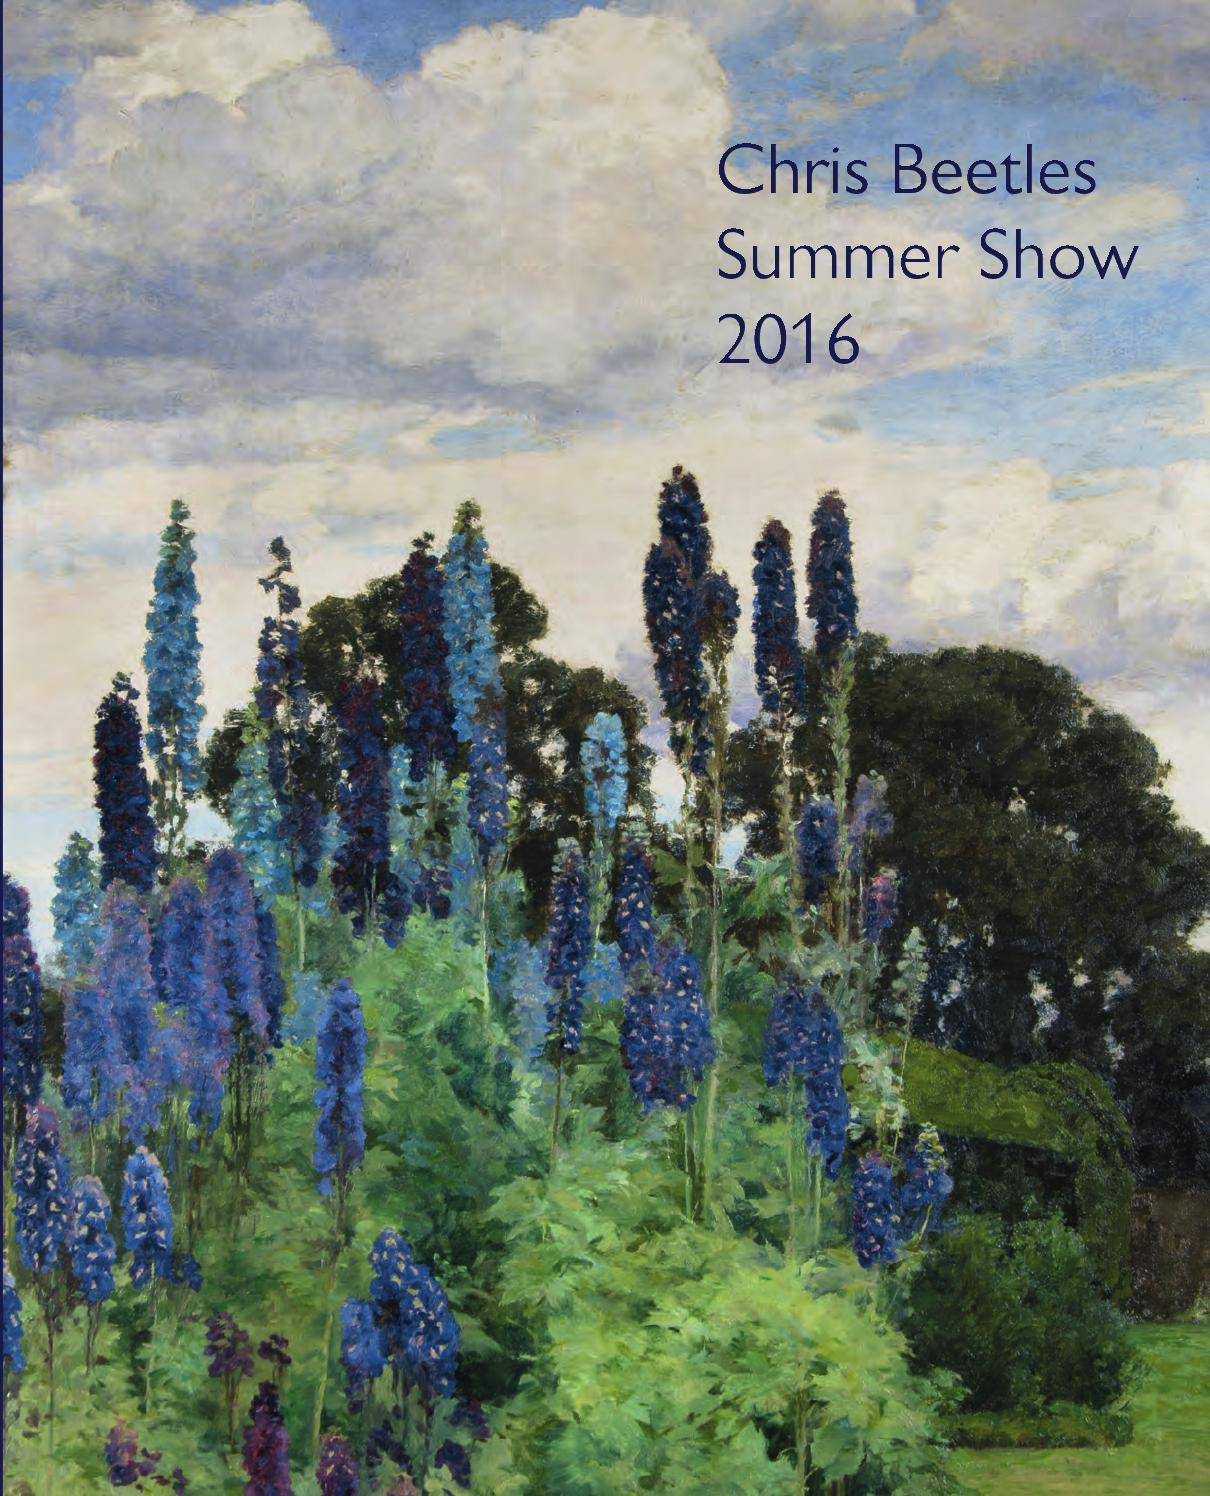 vincent van gogh vase with red poppies of chris beetles summer show 2016 by chris beetles issuu in page 1